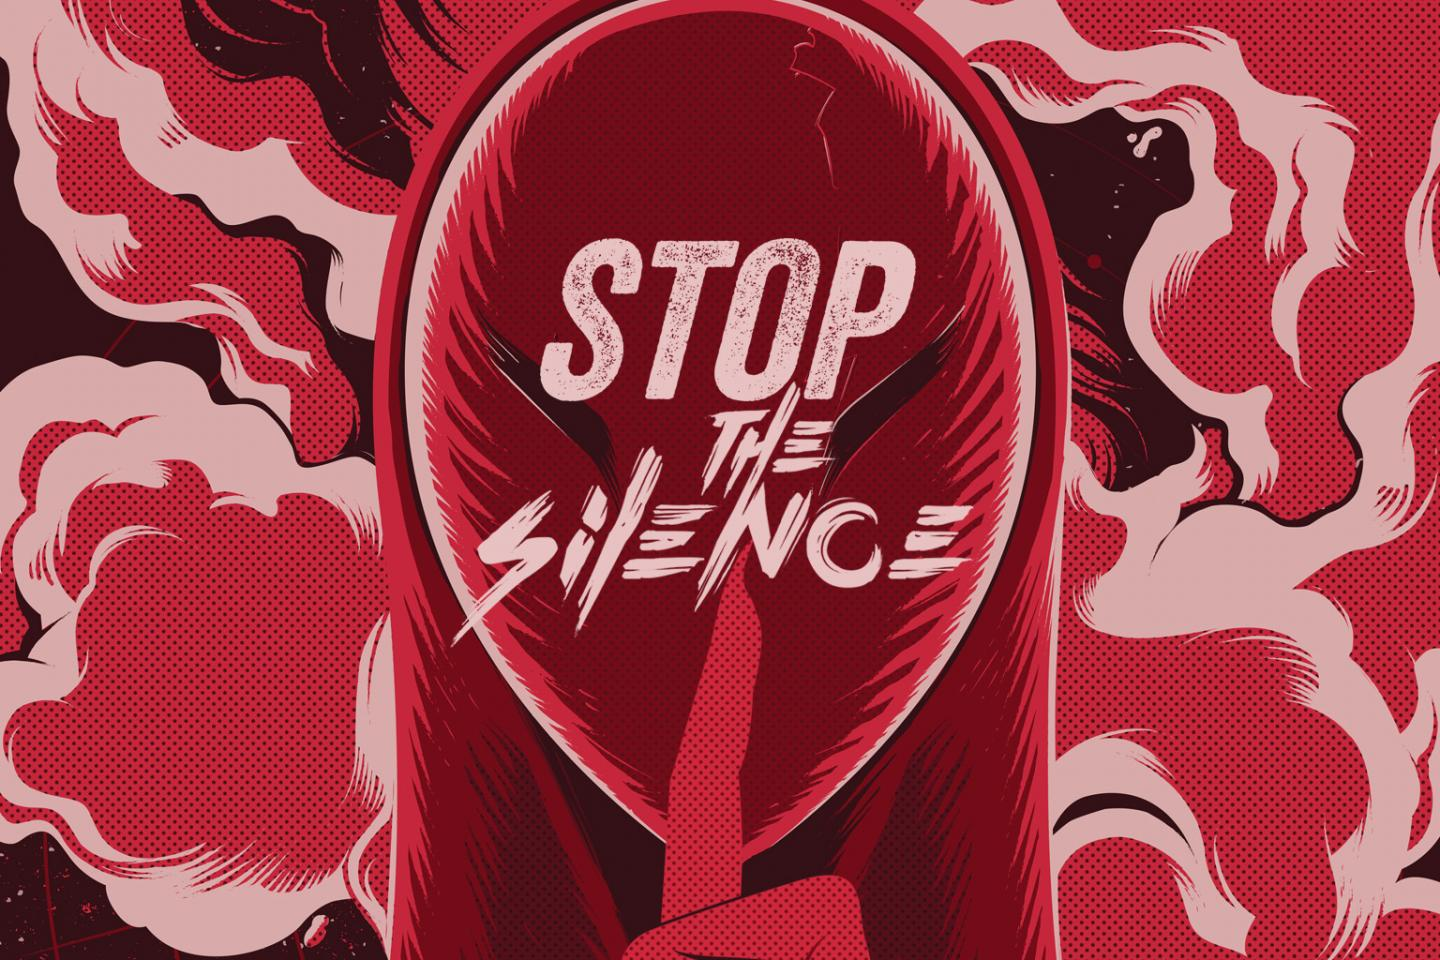 Stop the silence graphic